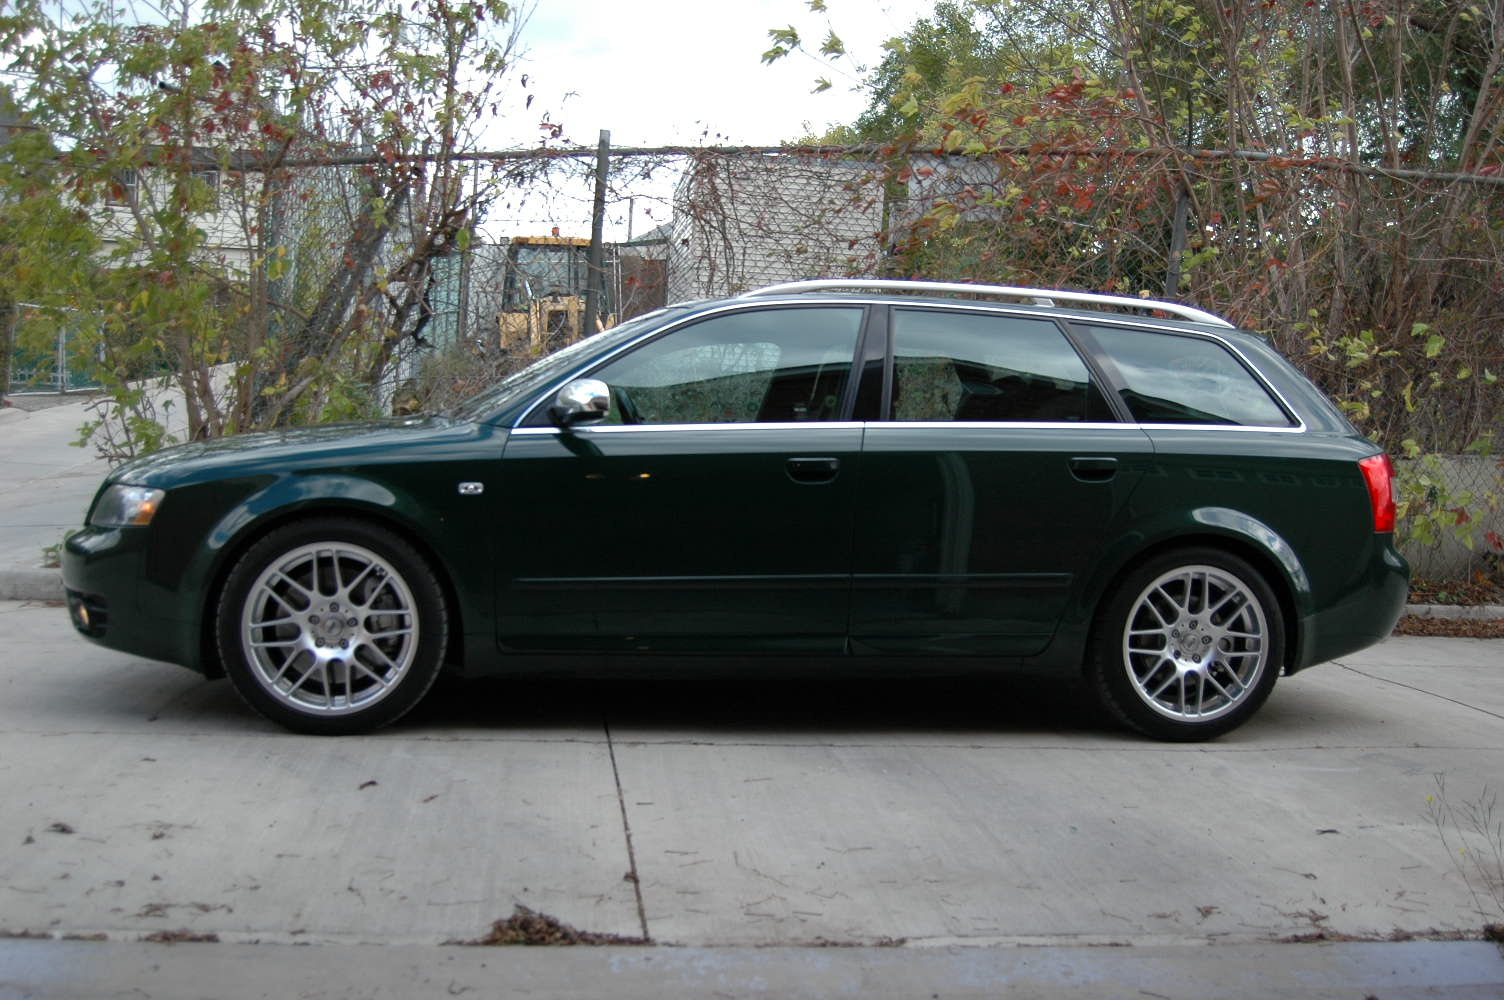 19 Quot Or 18 Quot Wheels Best For B6 Avant Stock Ride Height